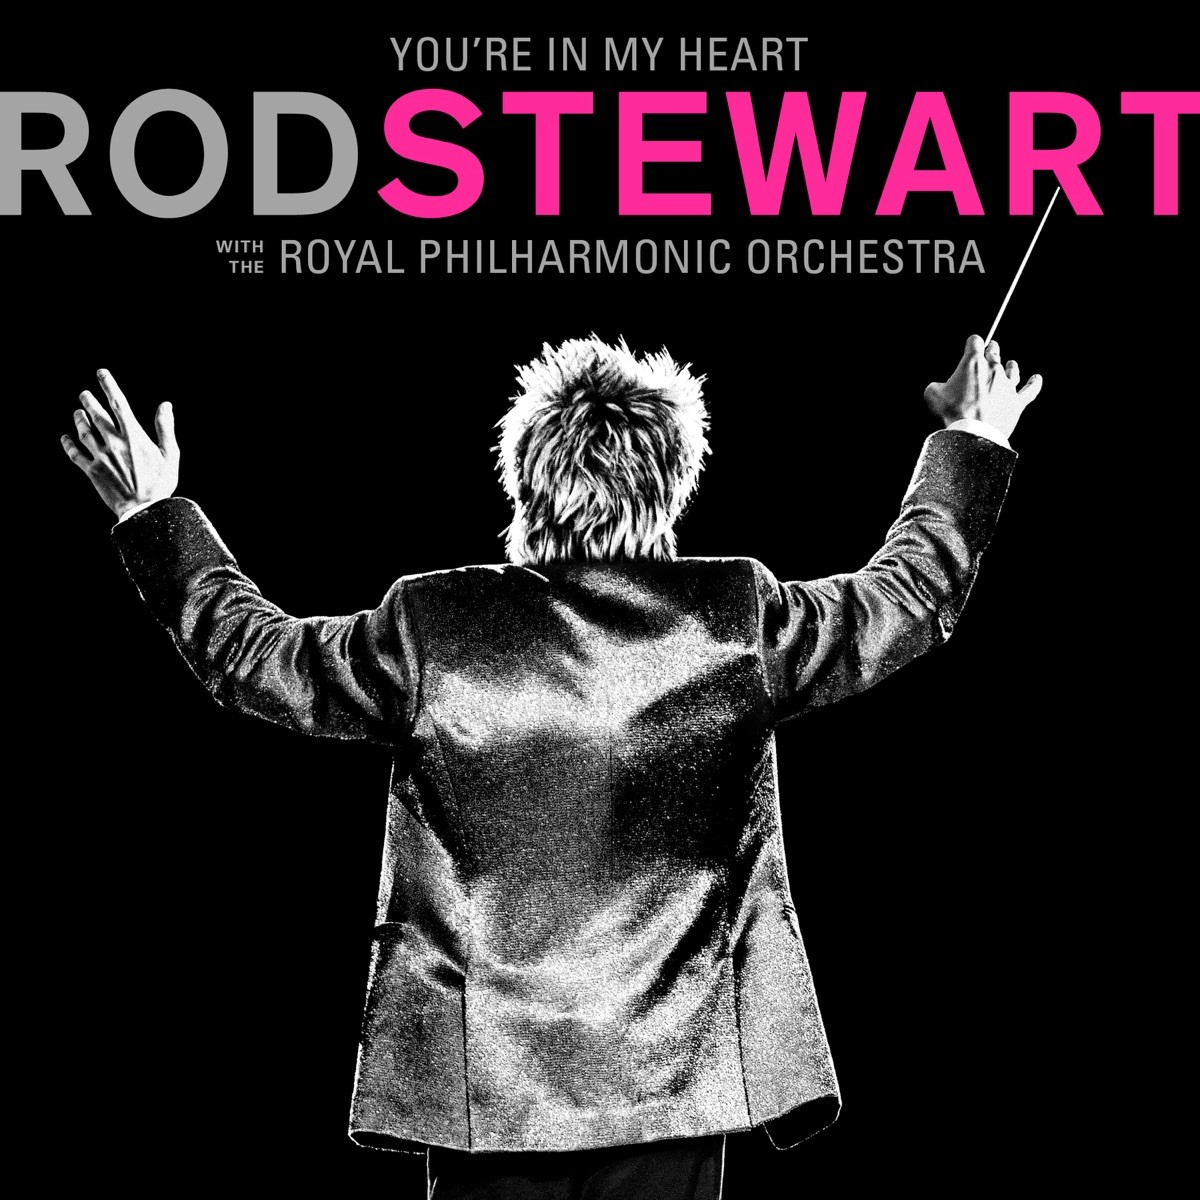 Rod Stewart - You're In My Heart: Rod Stewart (with the Royal Philharmonic Orchestra) CD - 0349784896